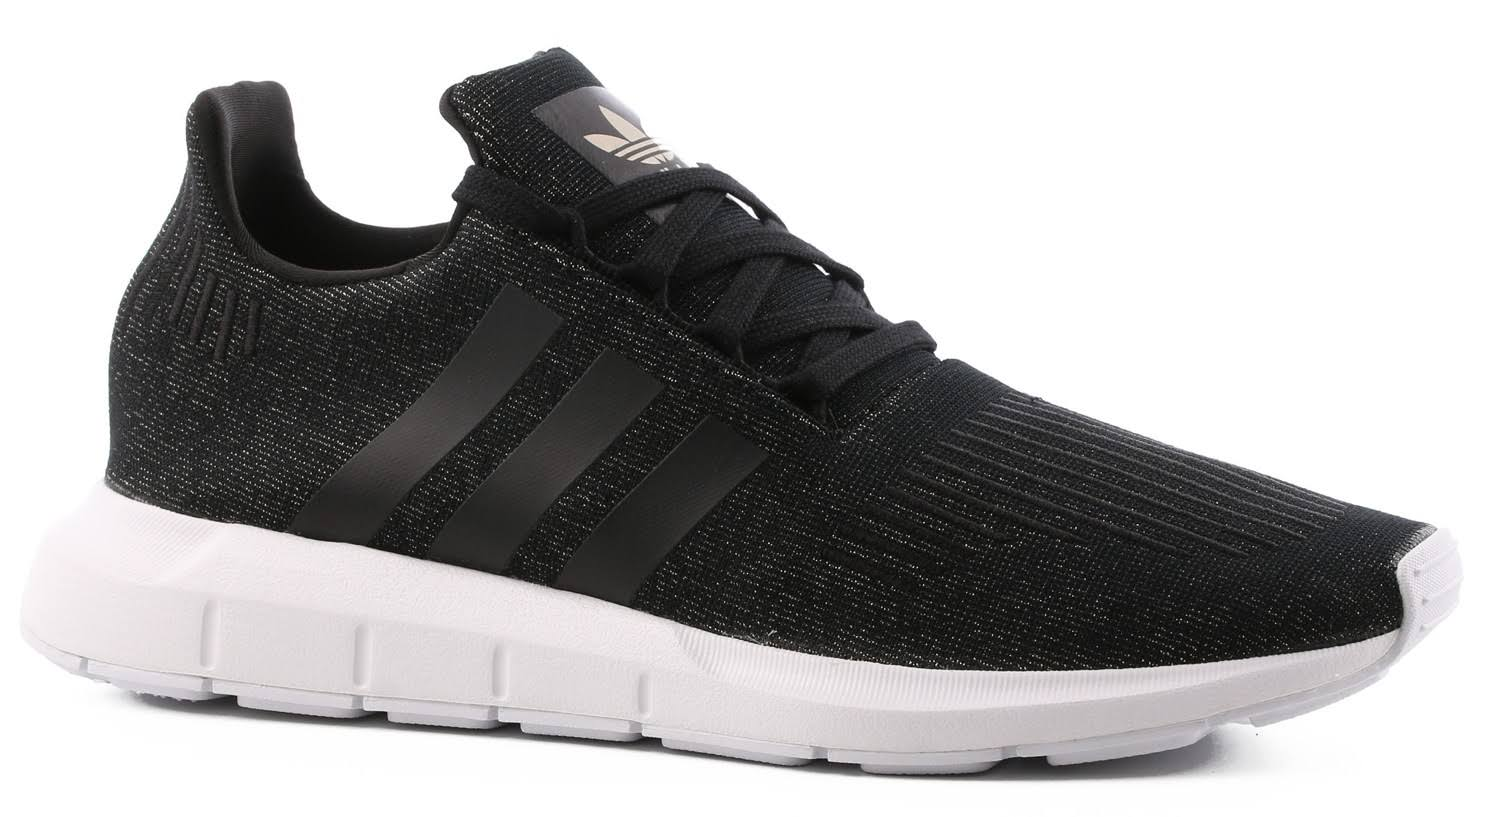 Zapatillas 6 Negro Swift Run Adidas qfBXwx8a